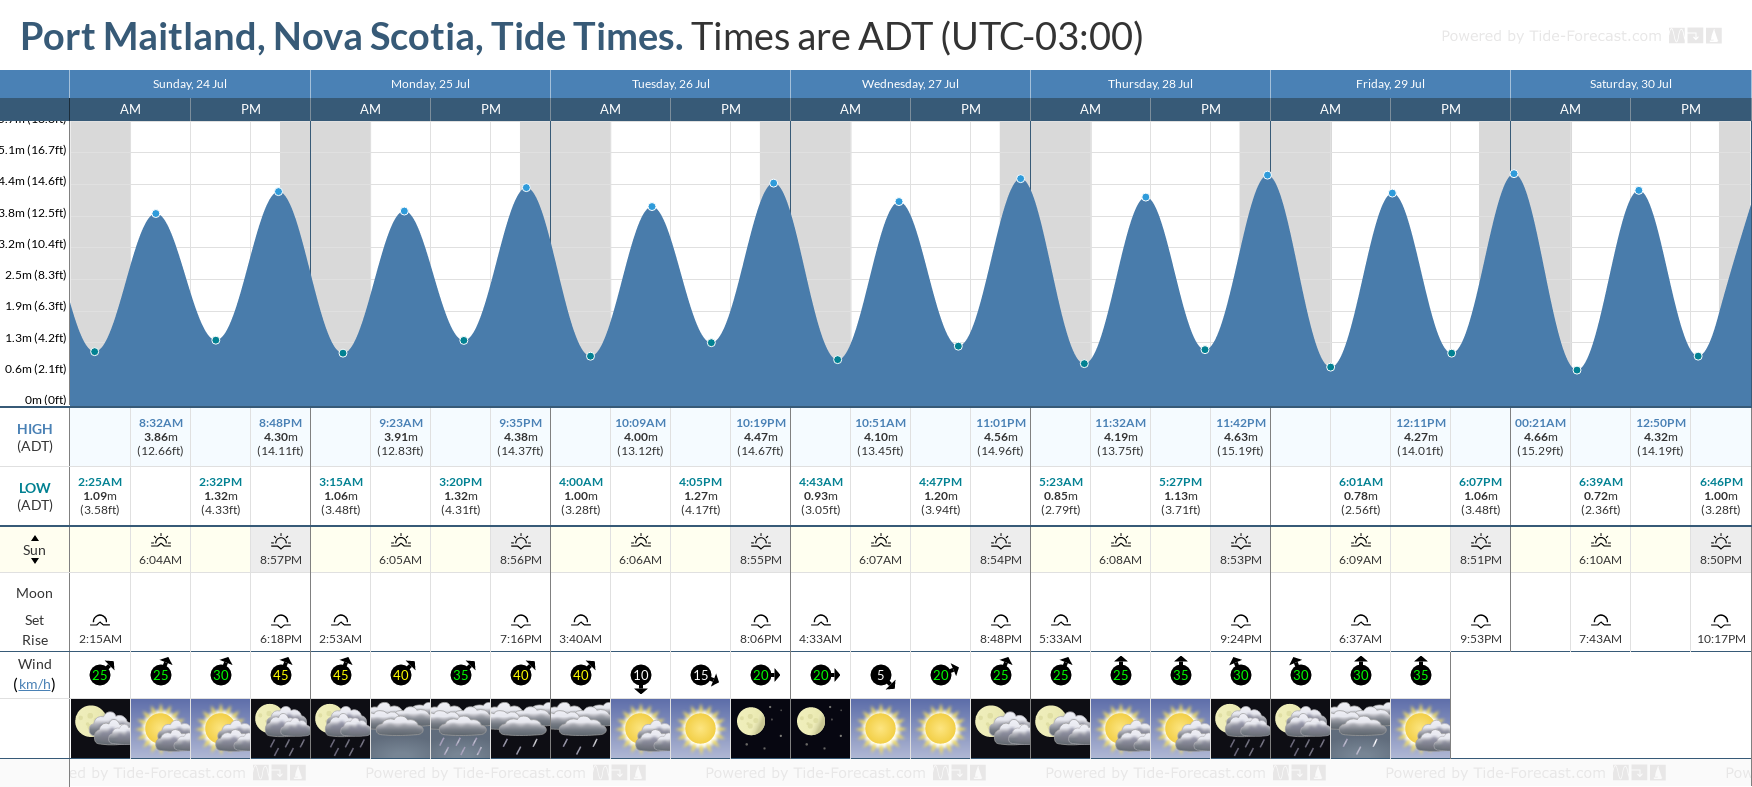 Port Maitland, Nova Scotia Tide Chart including high and low tide tide times for the next 7 days